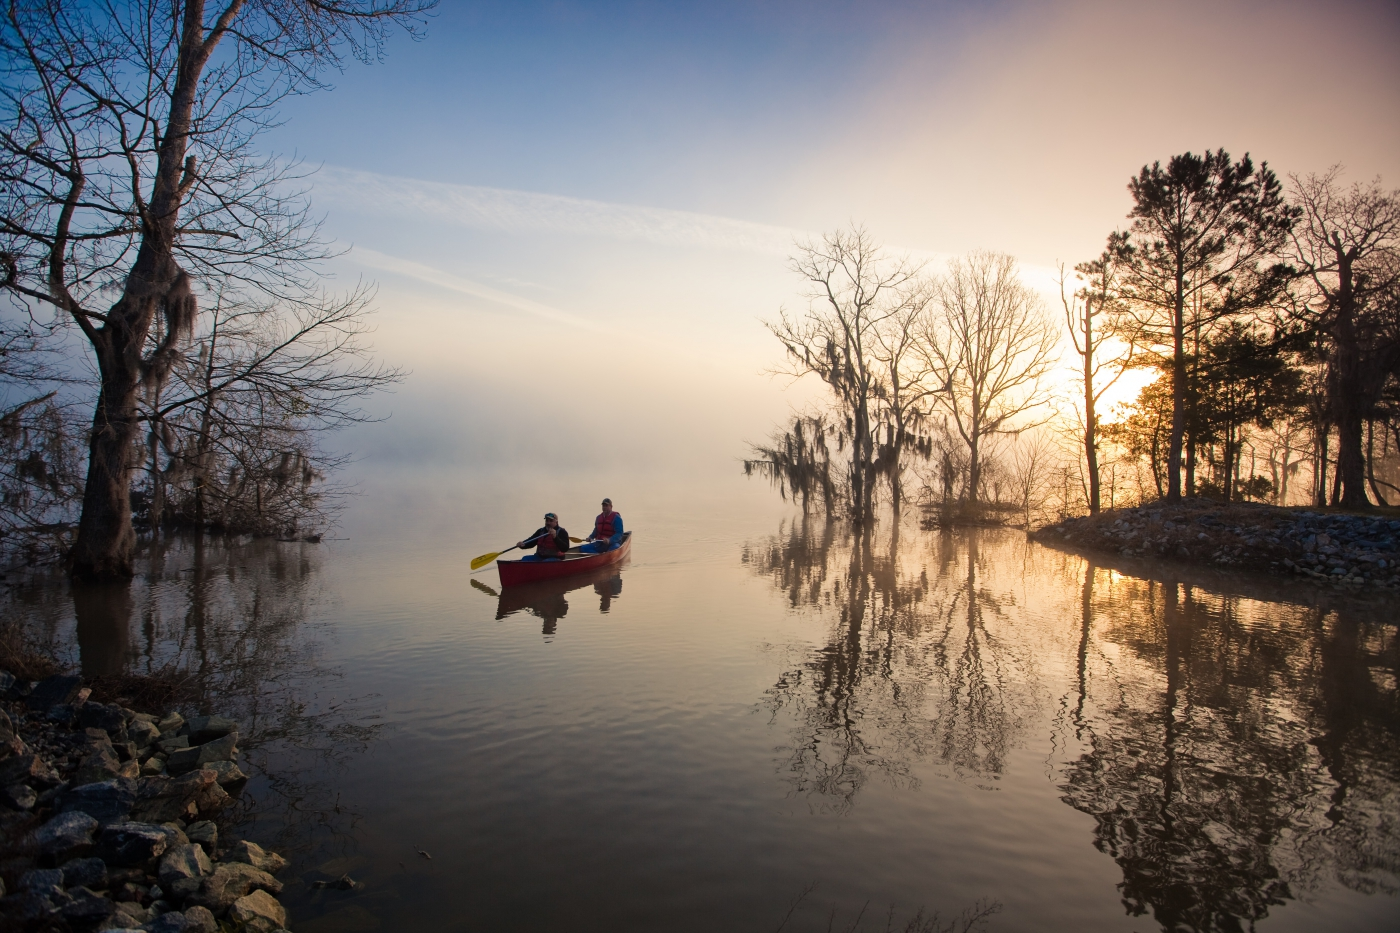 Become one with nature in Georgia, where you can dive into outdoor activities, visit natural attractions and state parks, and explore scenic byways and trails.